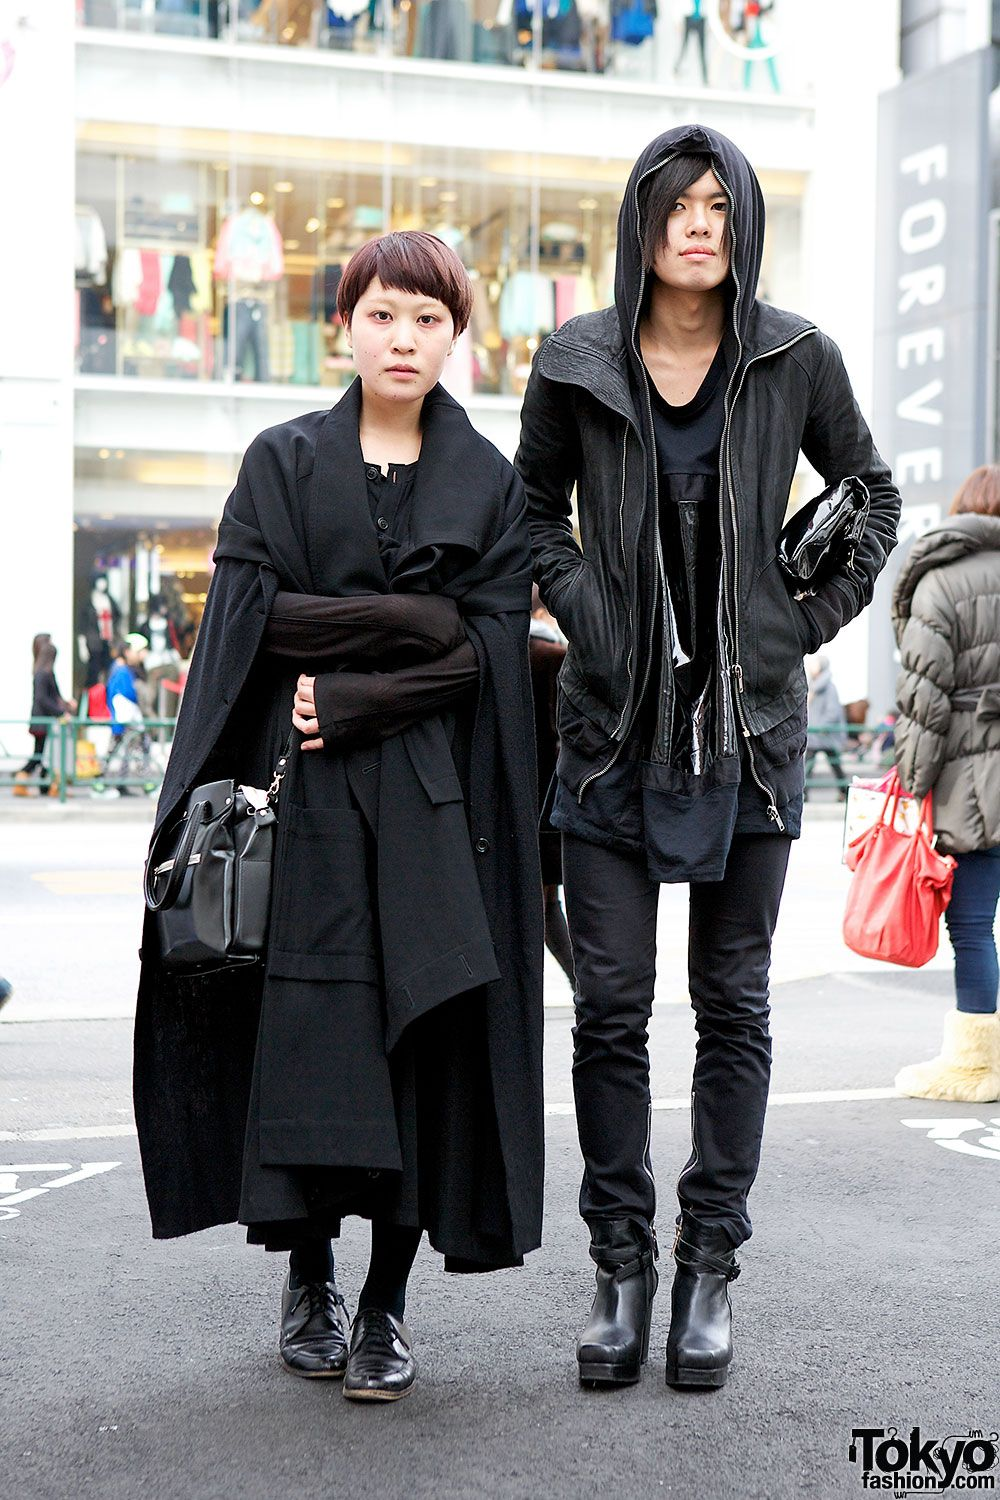 52c3781109a oh look out! double blackout chock full of Rick Owens and CdG. Harajuku ...awesome.